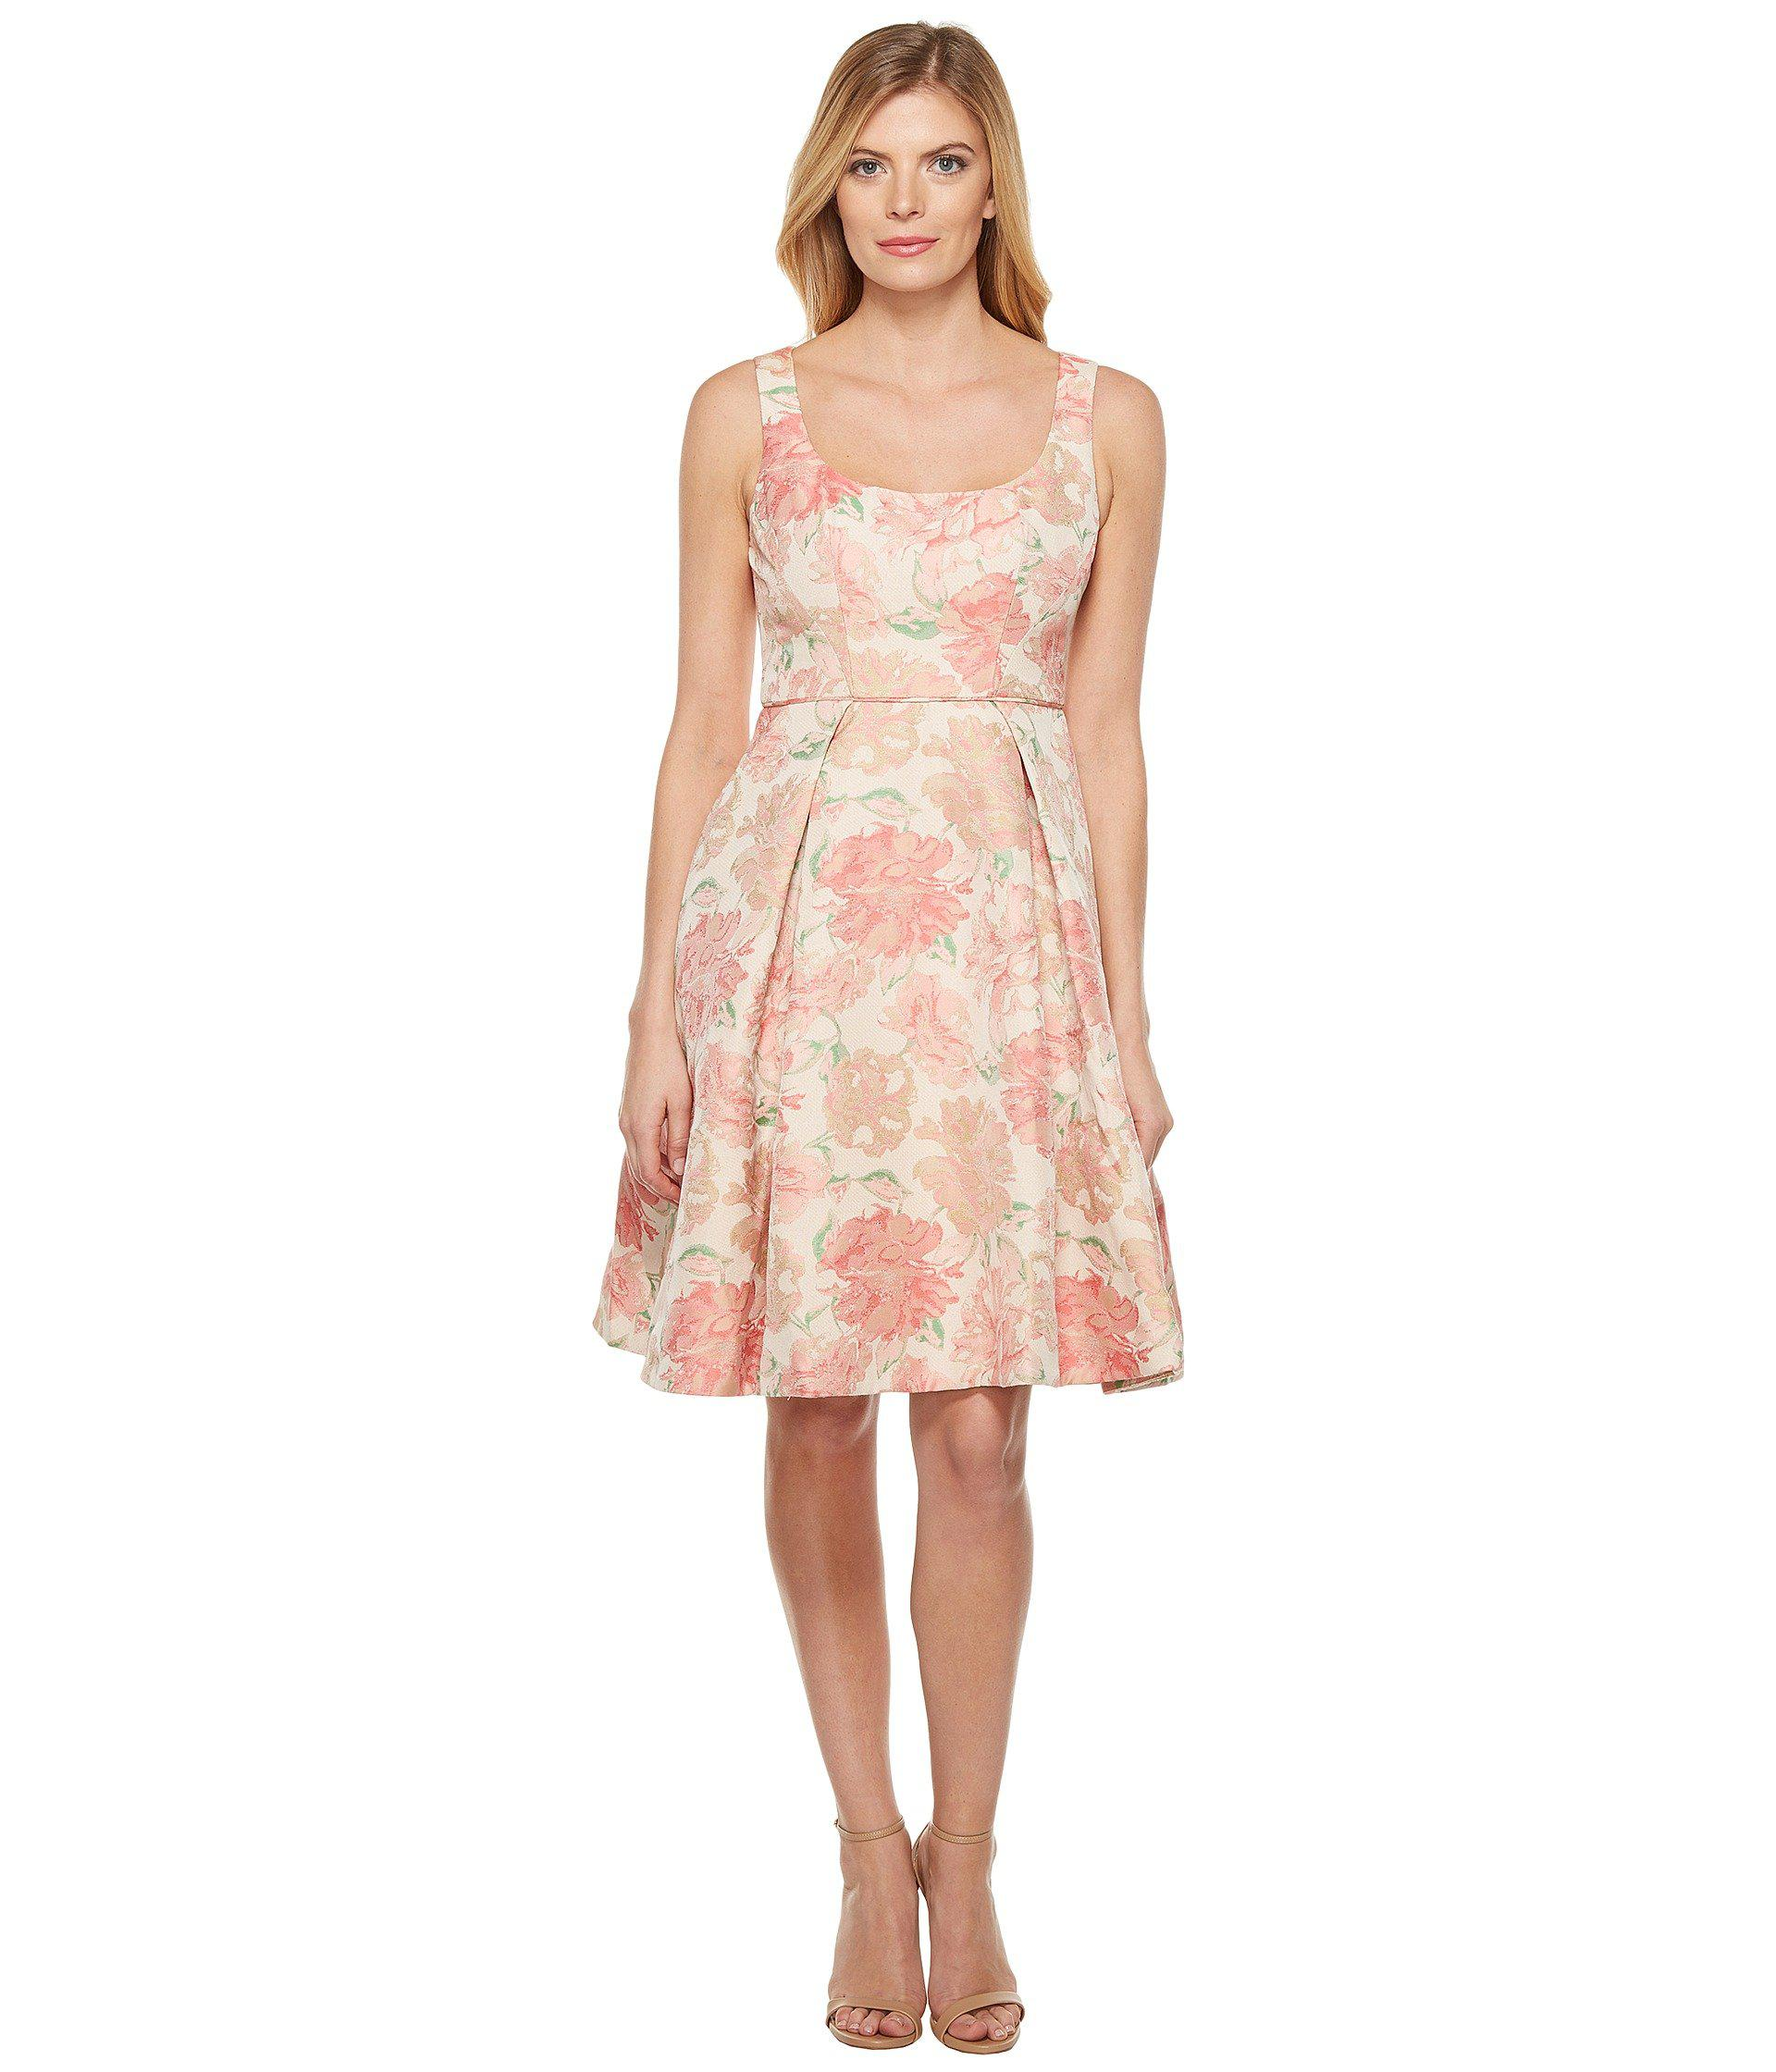 ae3682b1203bd Lyst - Maggy London Jacquard Bloom Fit And Flare in Pink - Save 40%